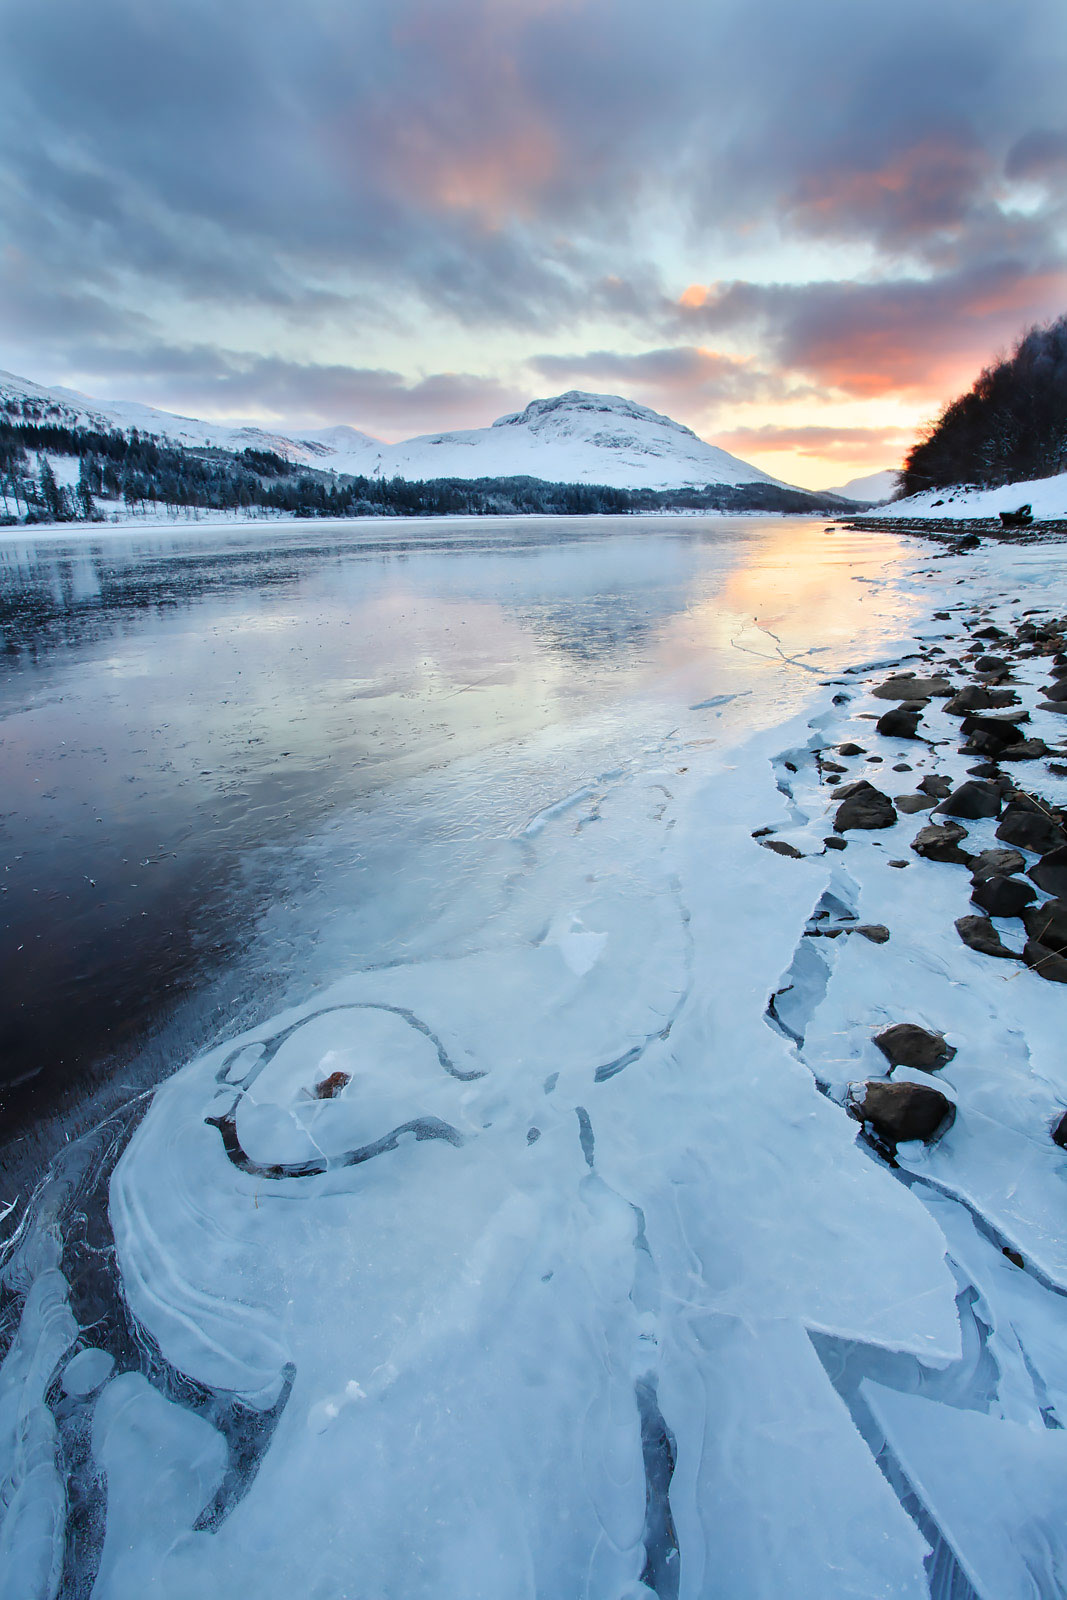 Loch Laggan, ice paterns and sunset. Inverness-shire, Scotland, December 2010.